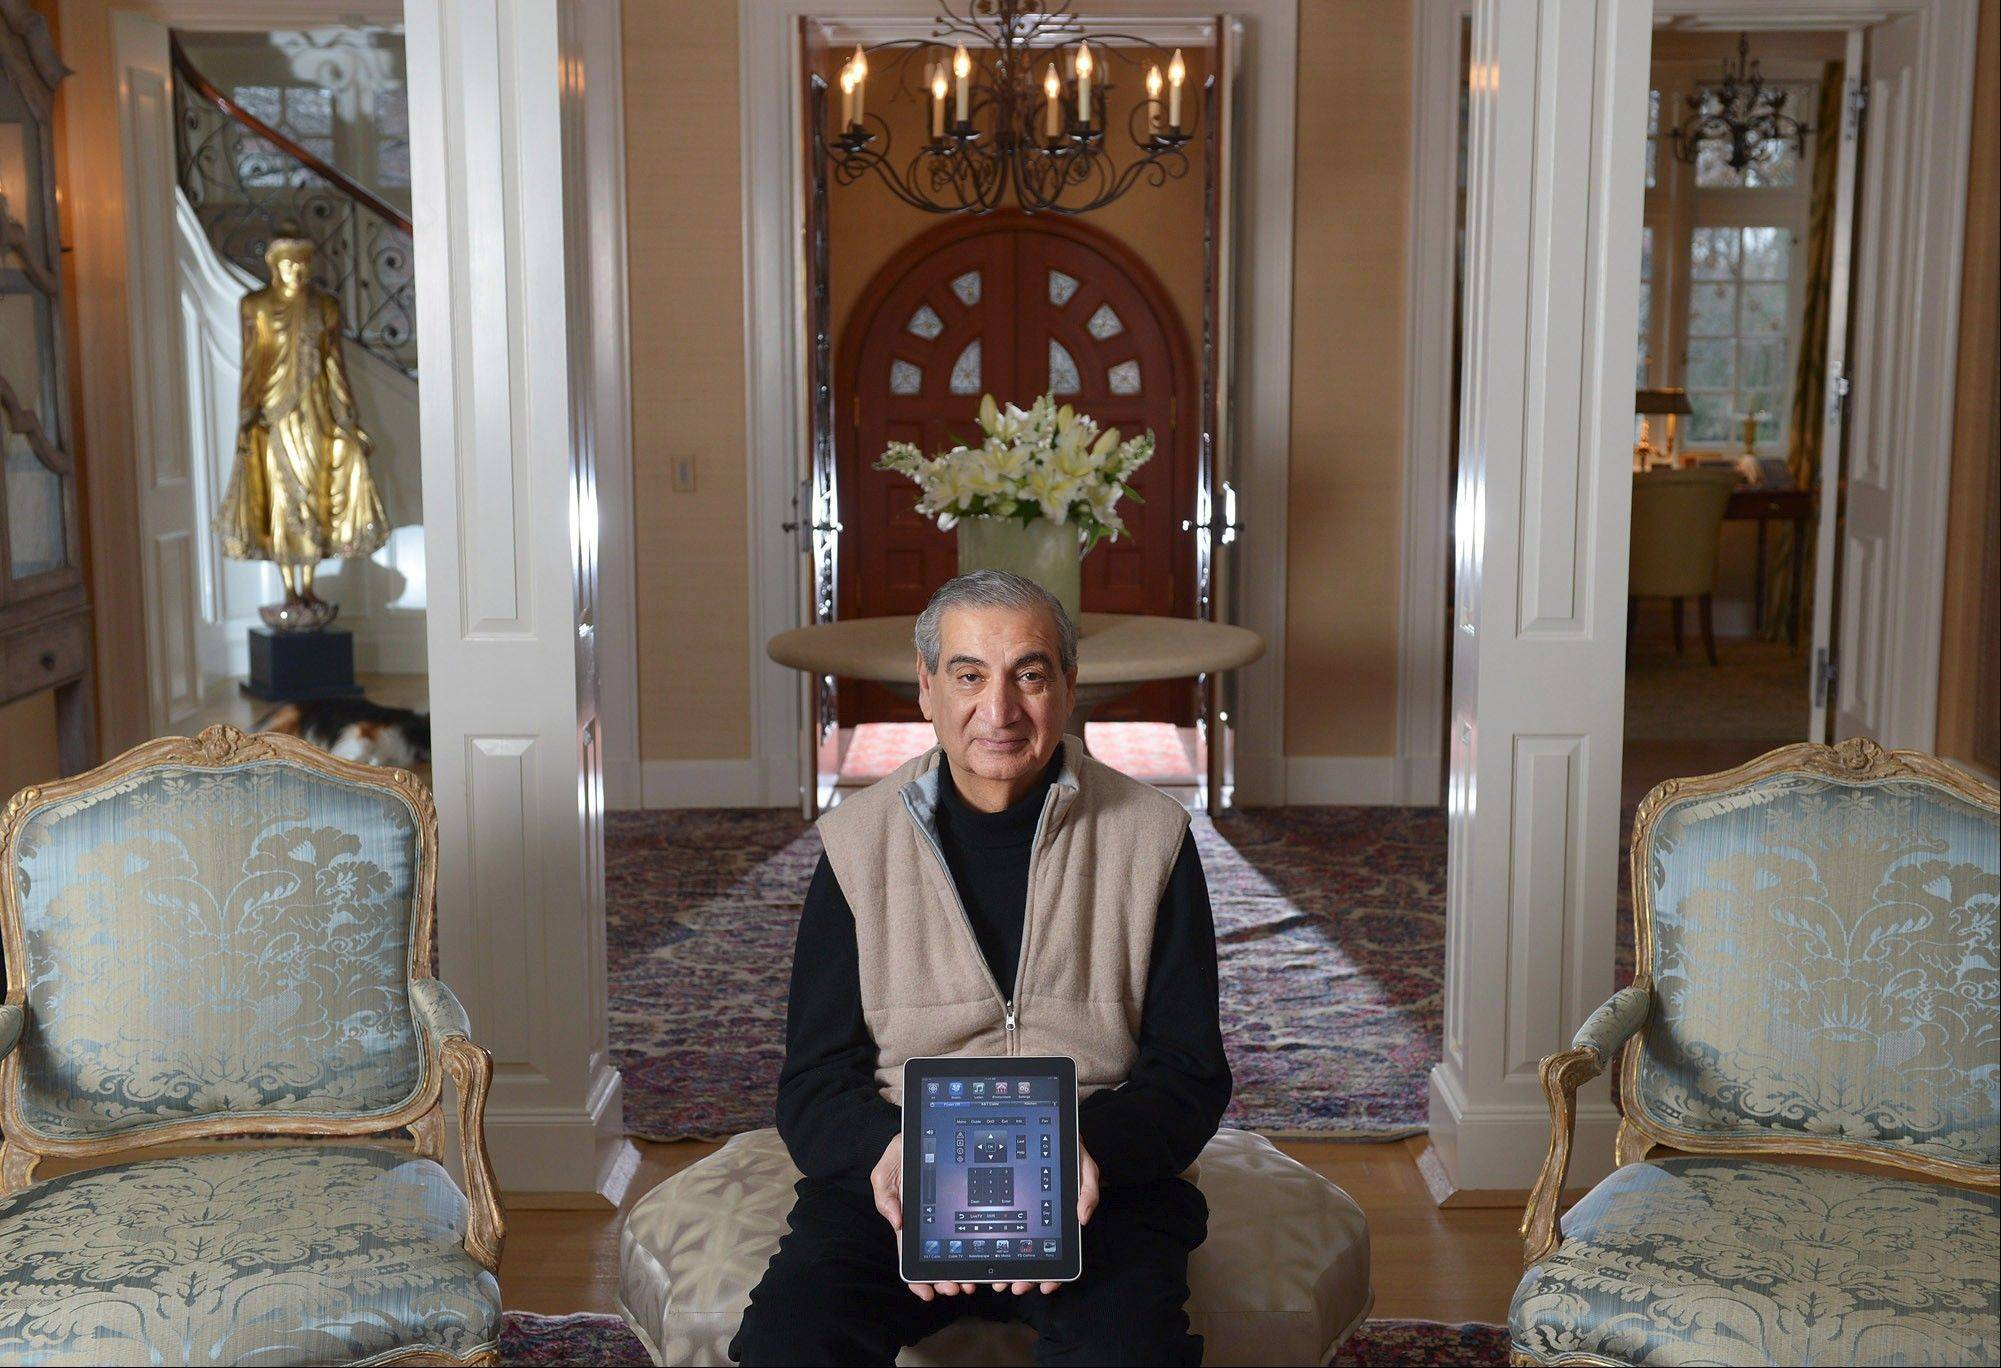 Choksi, 69, holds an iPad, which he uses to control devices in the home he shares with his wife, Mary.